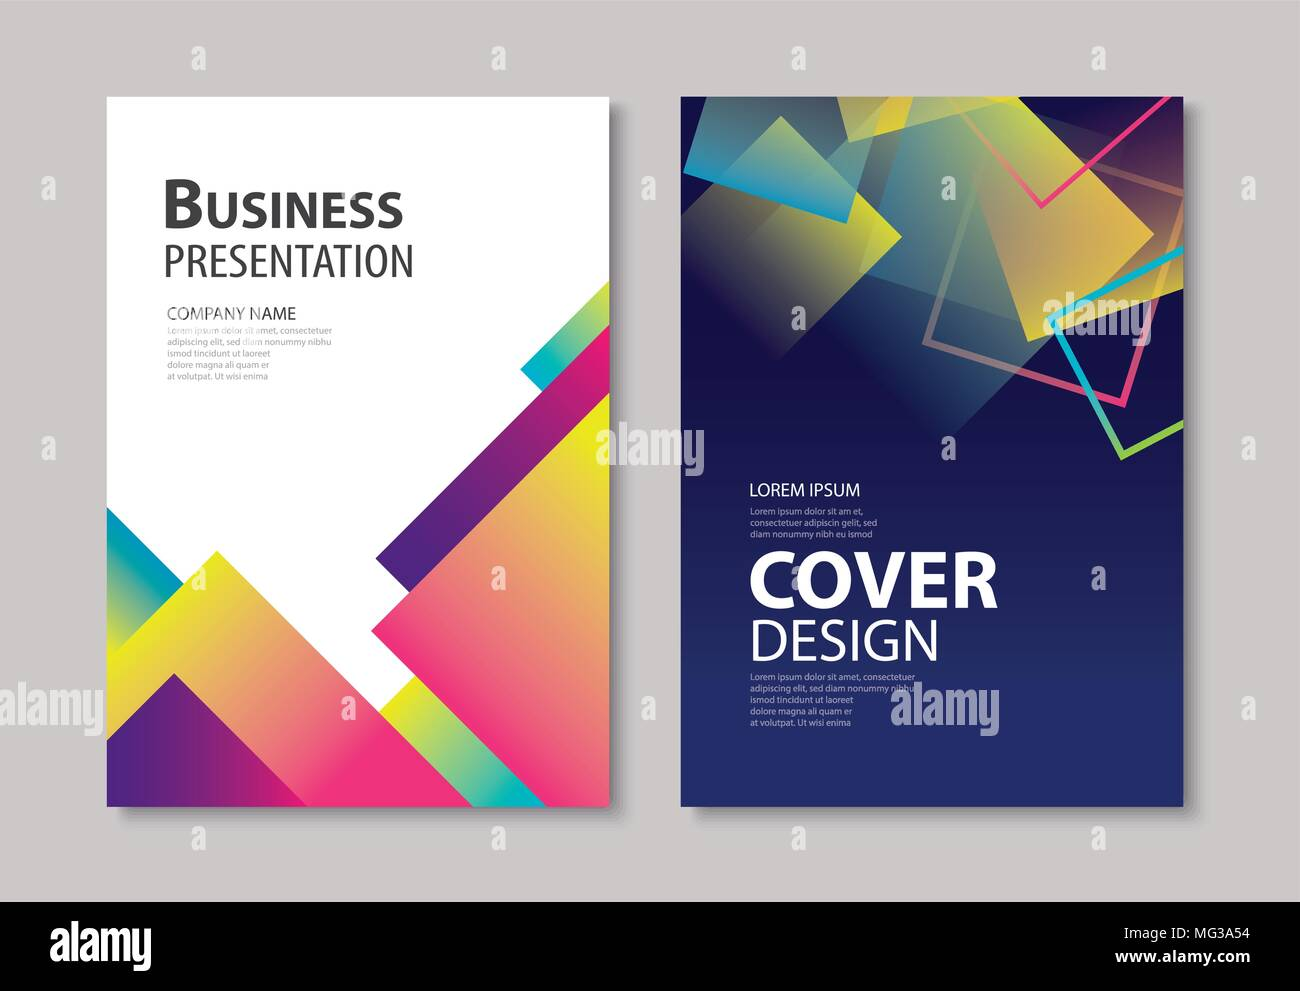 Book Cover Design Template Illustrator : Abstract gradient modern geometric flyer and poster design